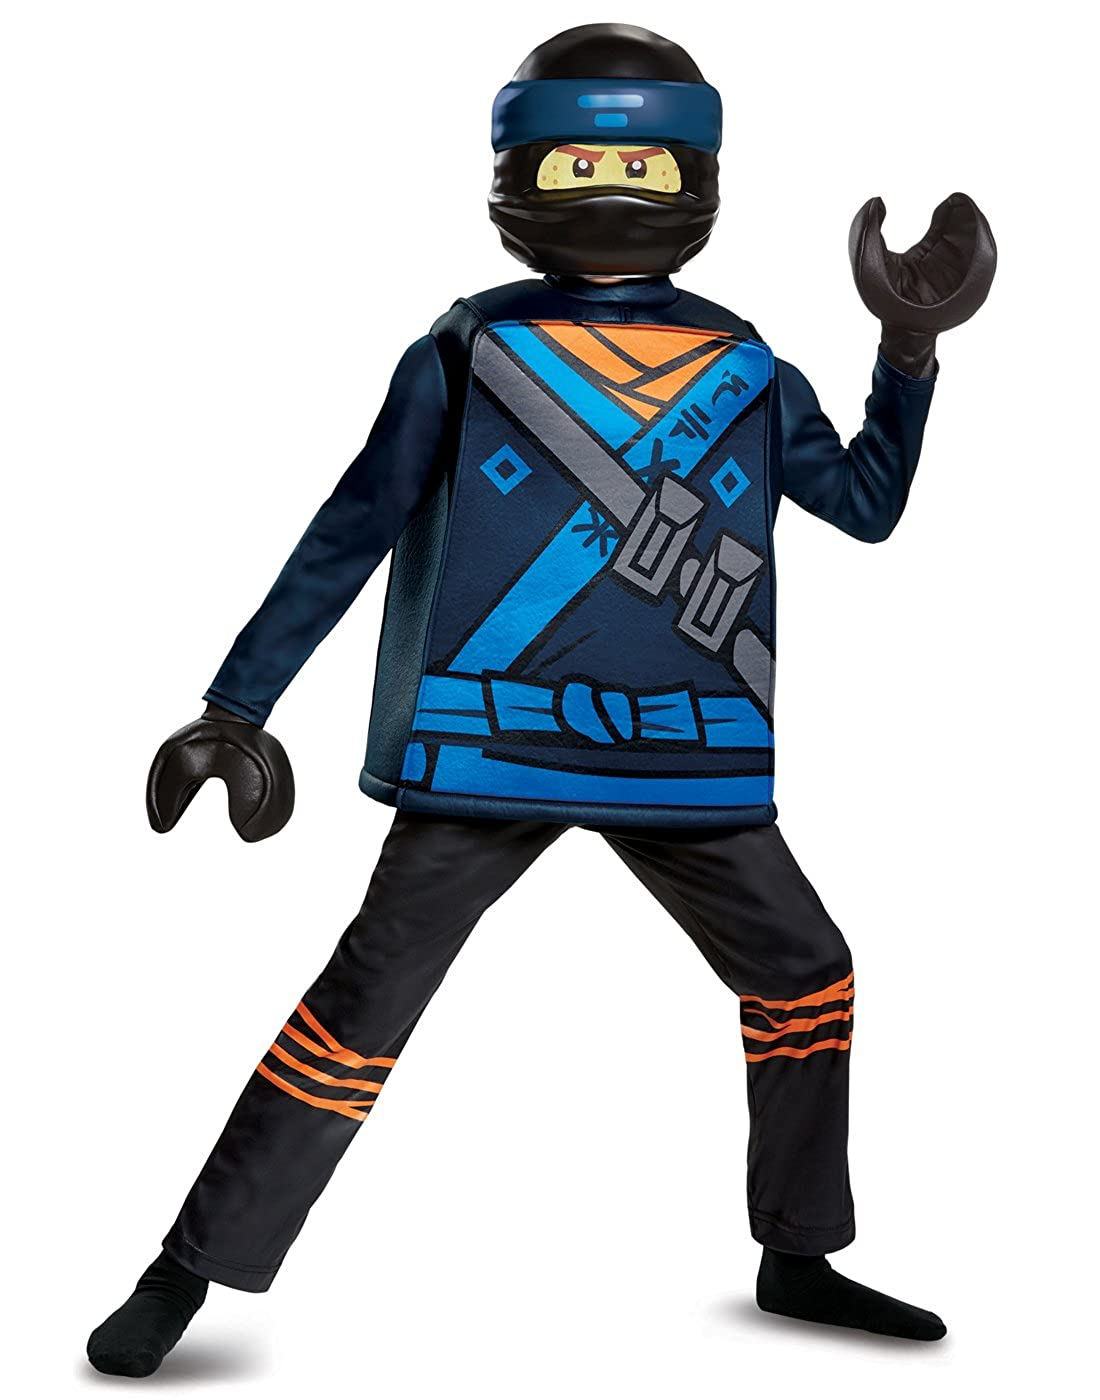 Amazon.com: Lego Ninjago Jay Child Costume Deluxe Boys ...